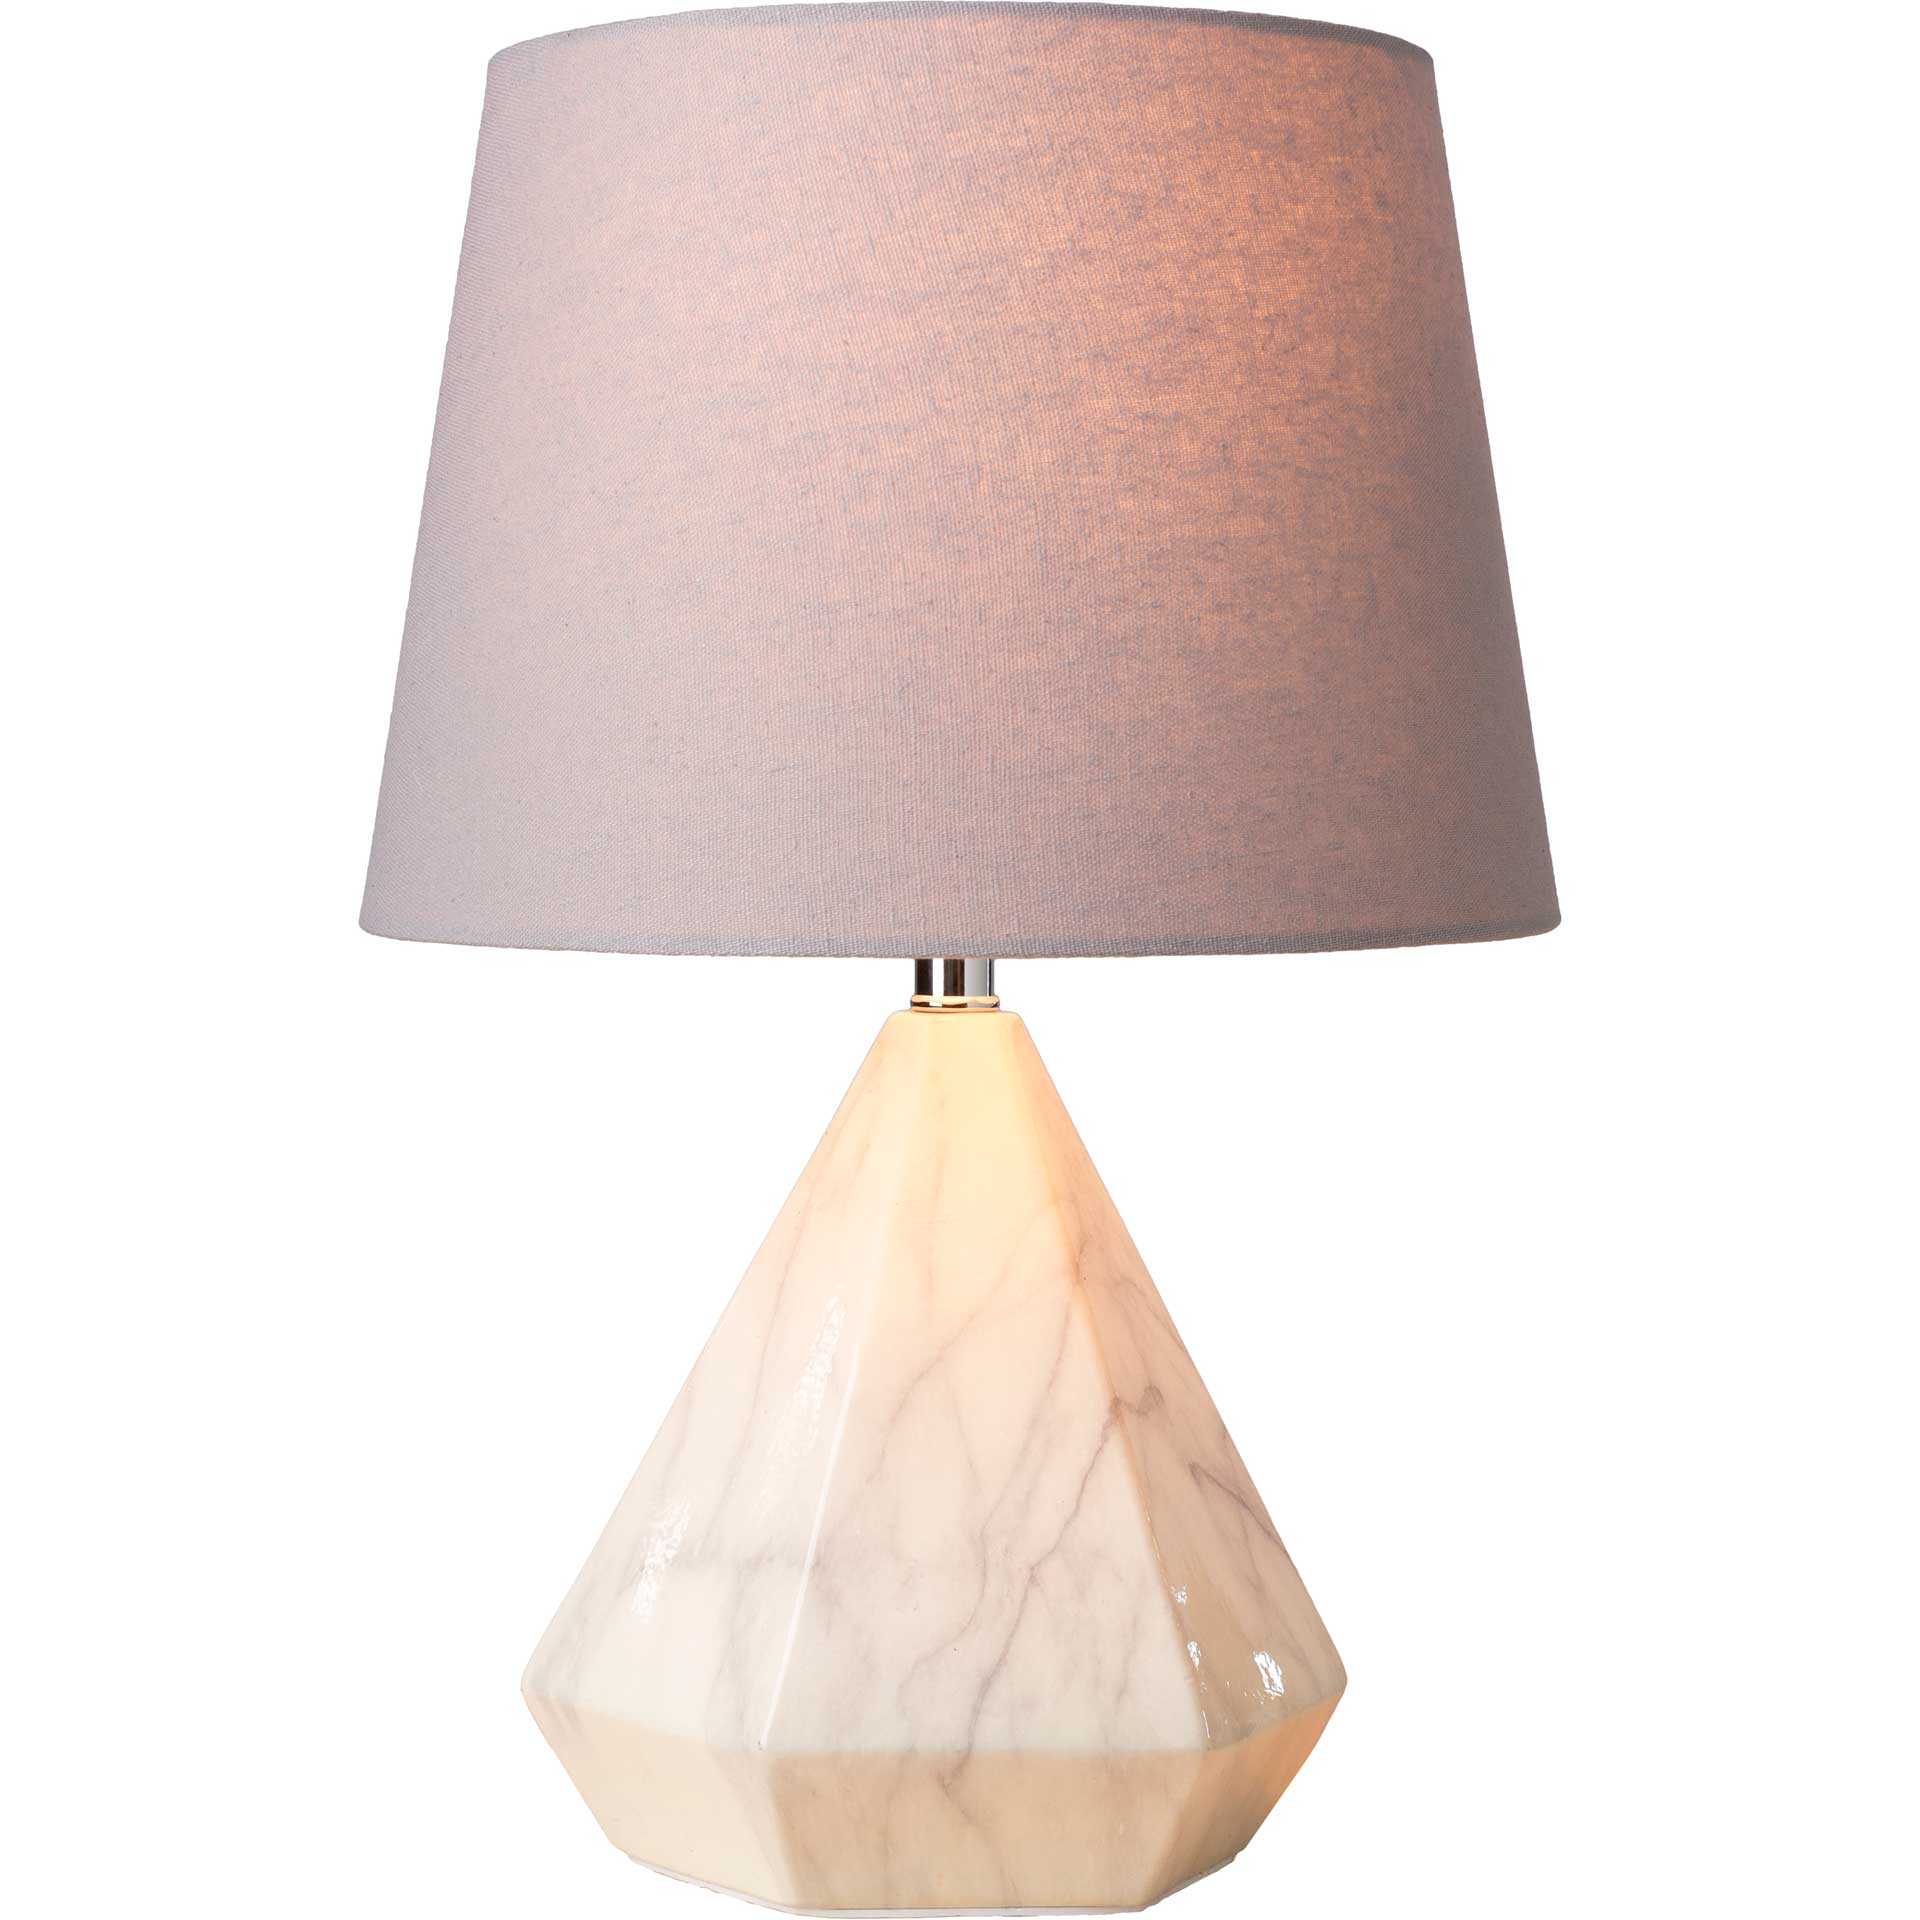 Presley Table Lamp Light Gray/White